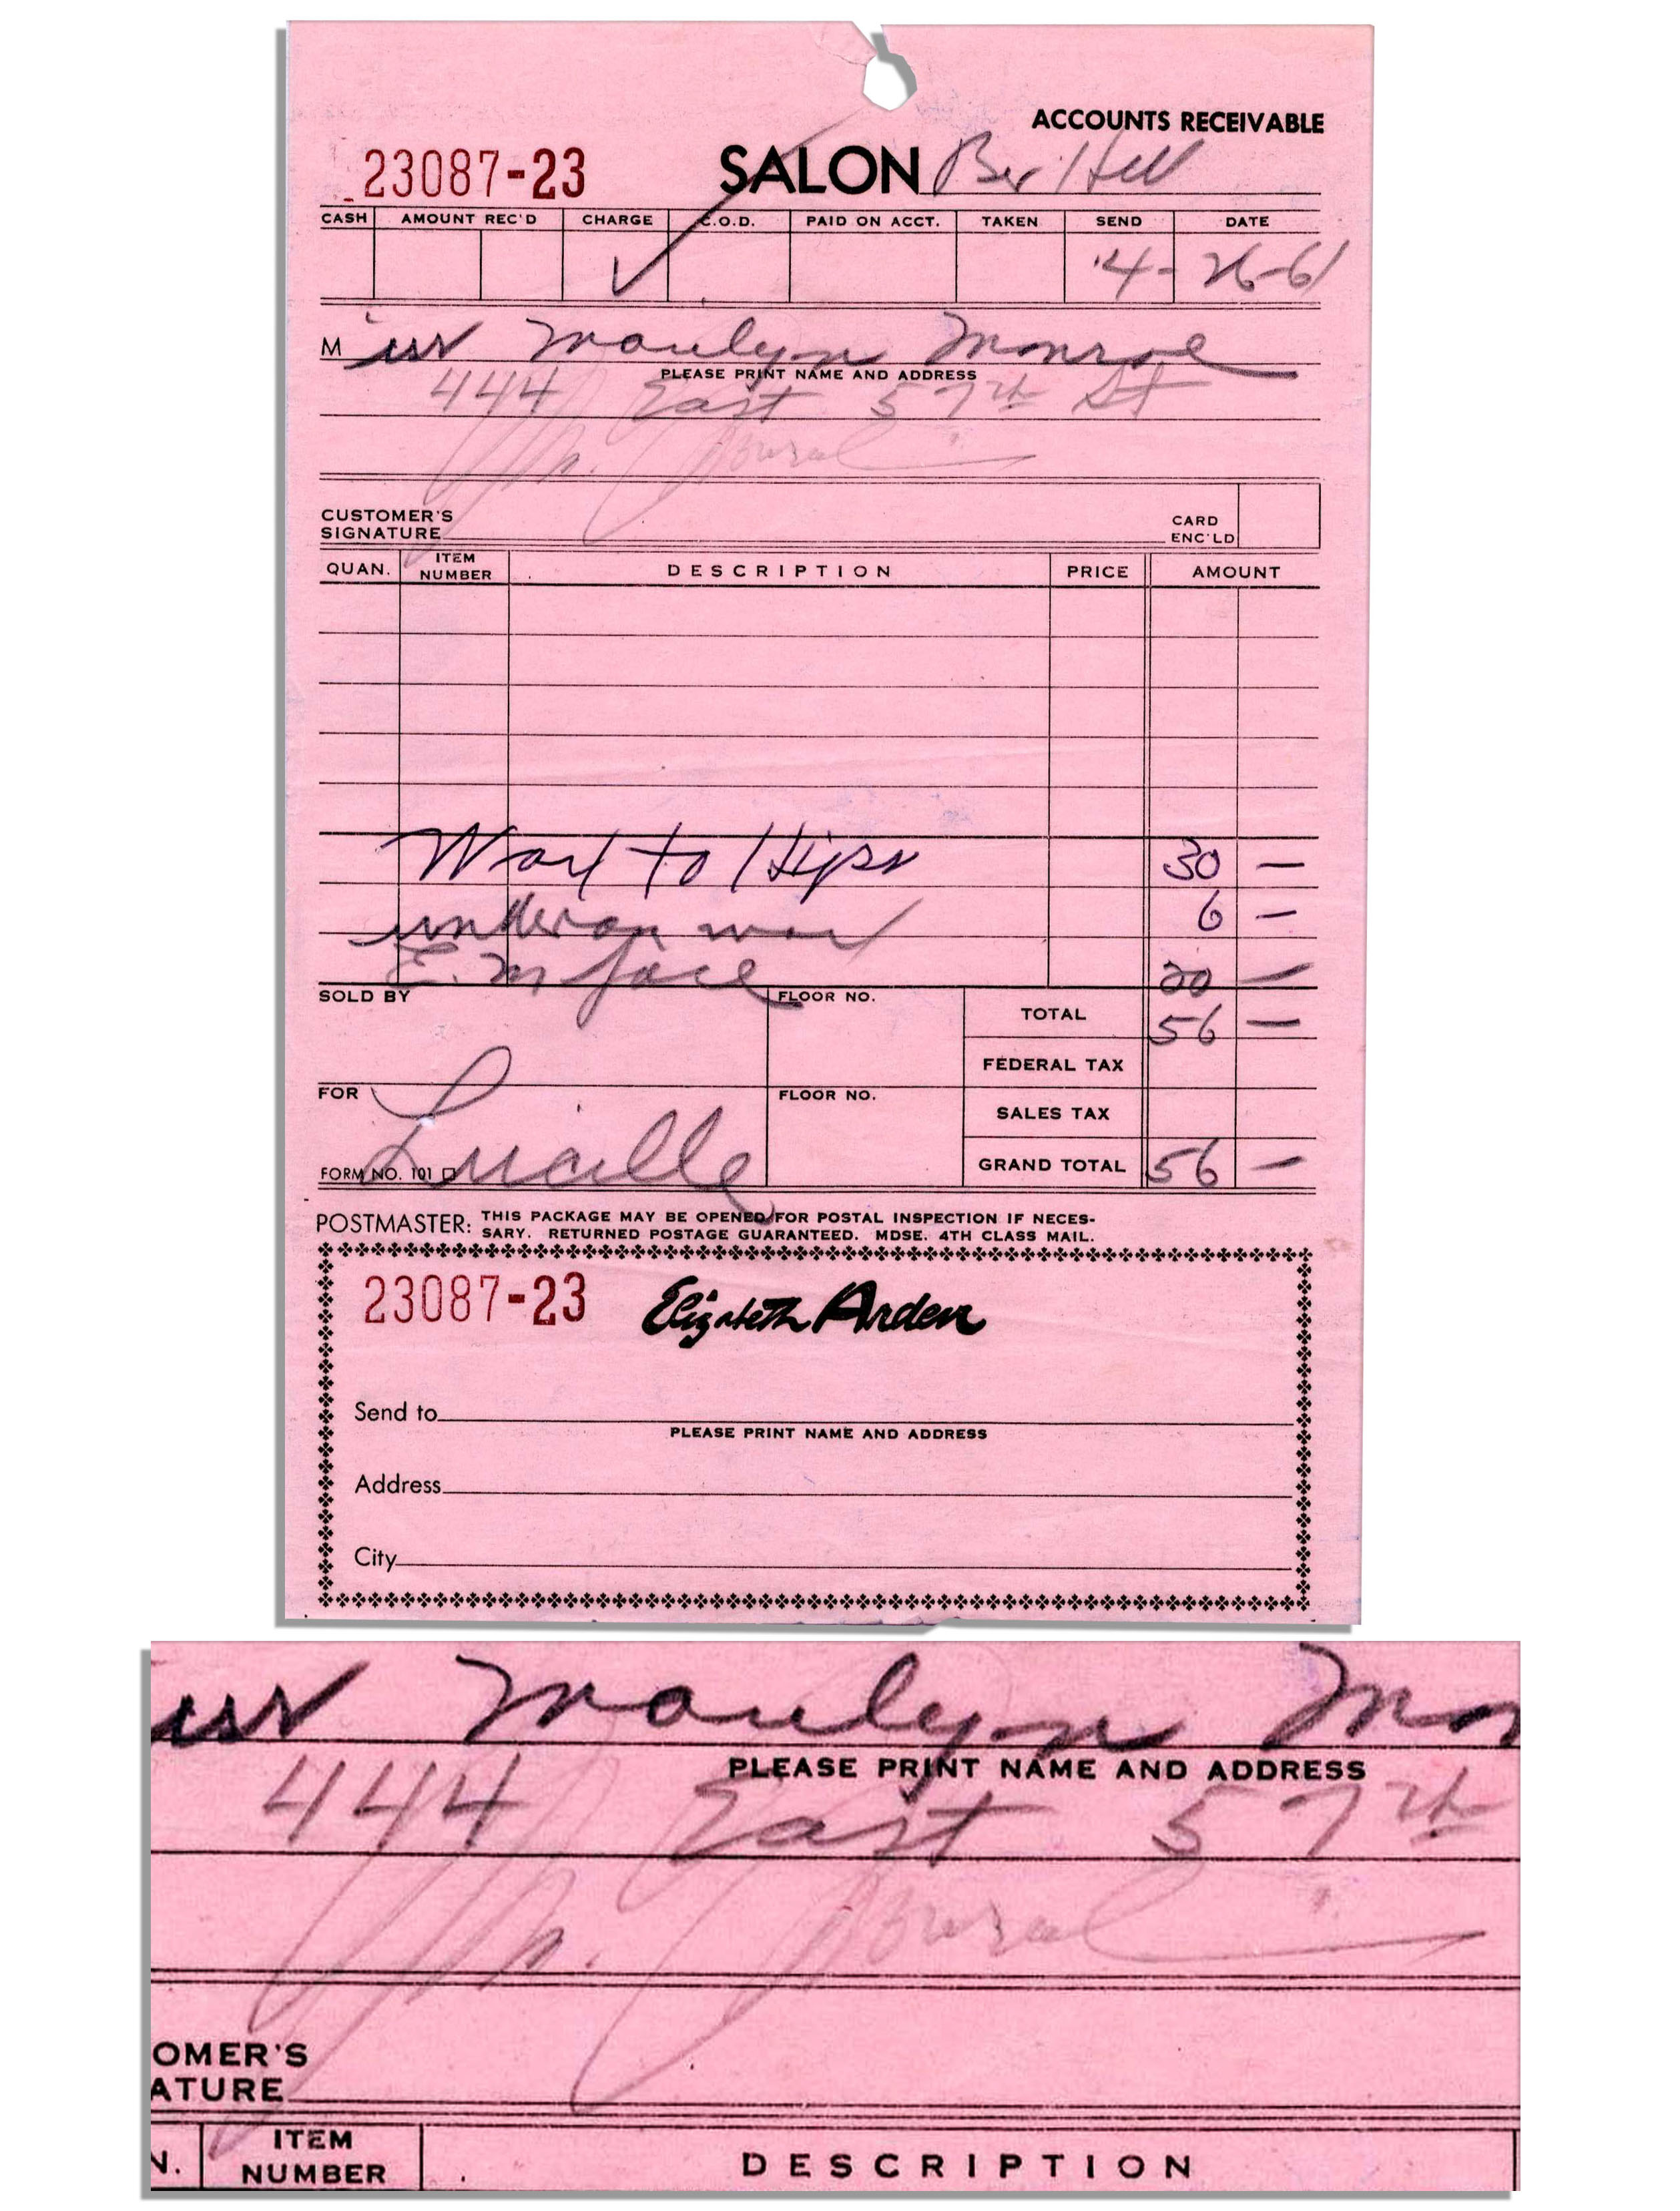 Lot detail marilyn monroe signed salon receipt from 1961 for A signature hollywood salon